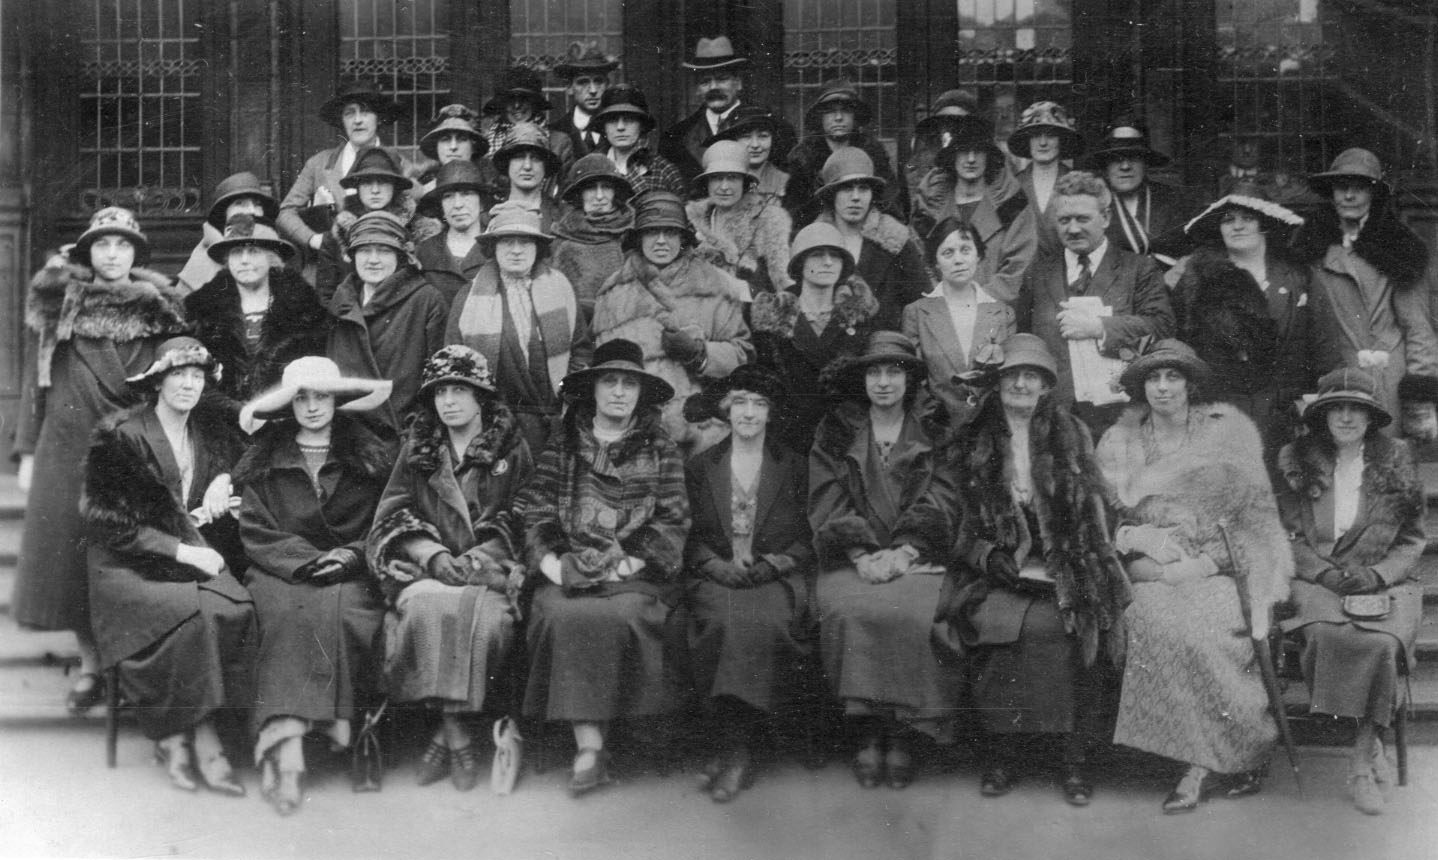 Attendees to the WES conference 1920s.